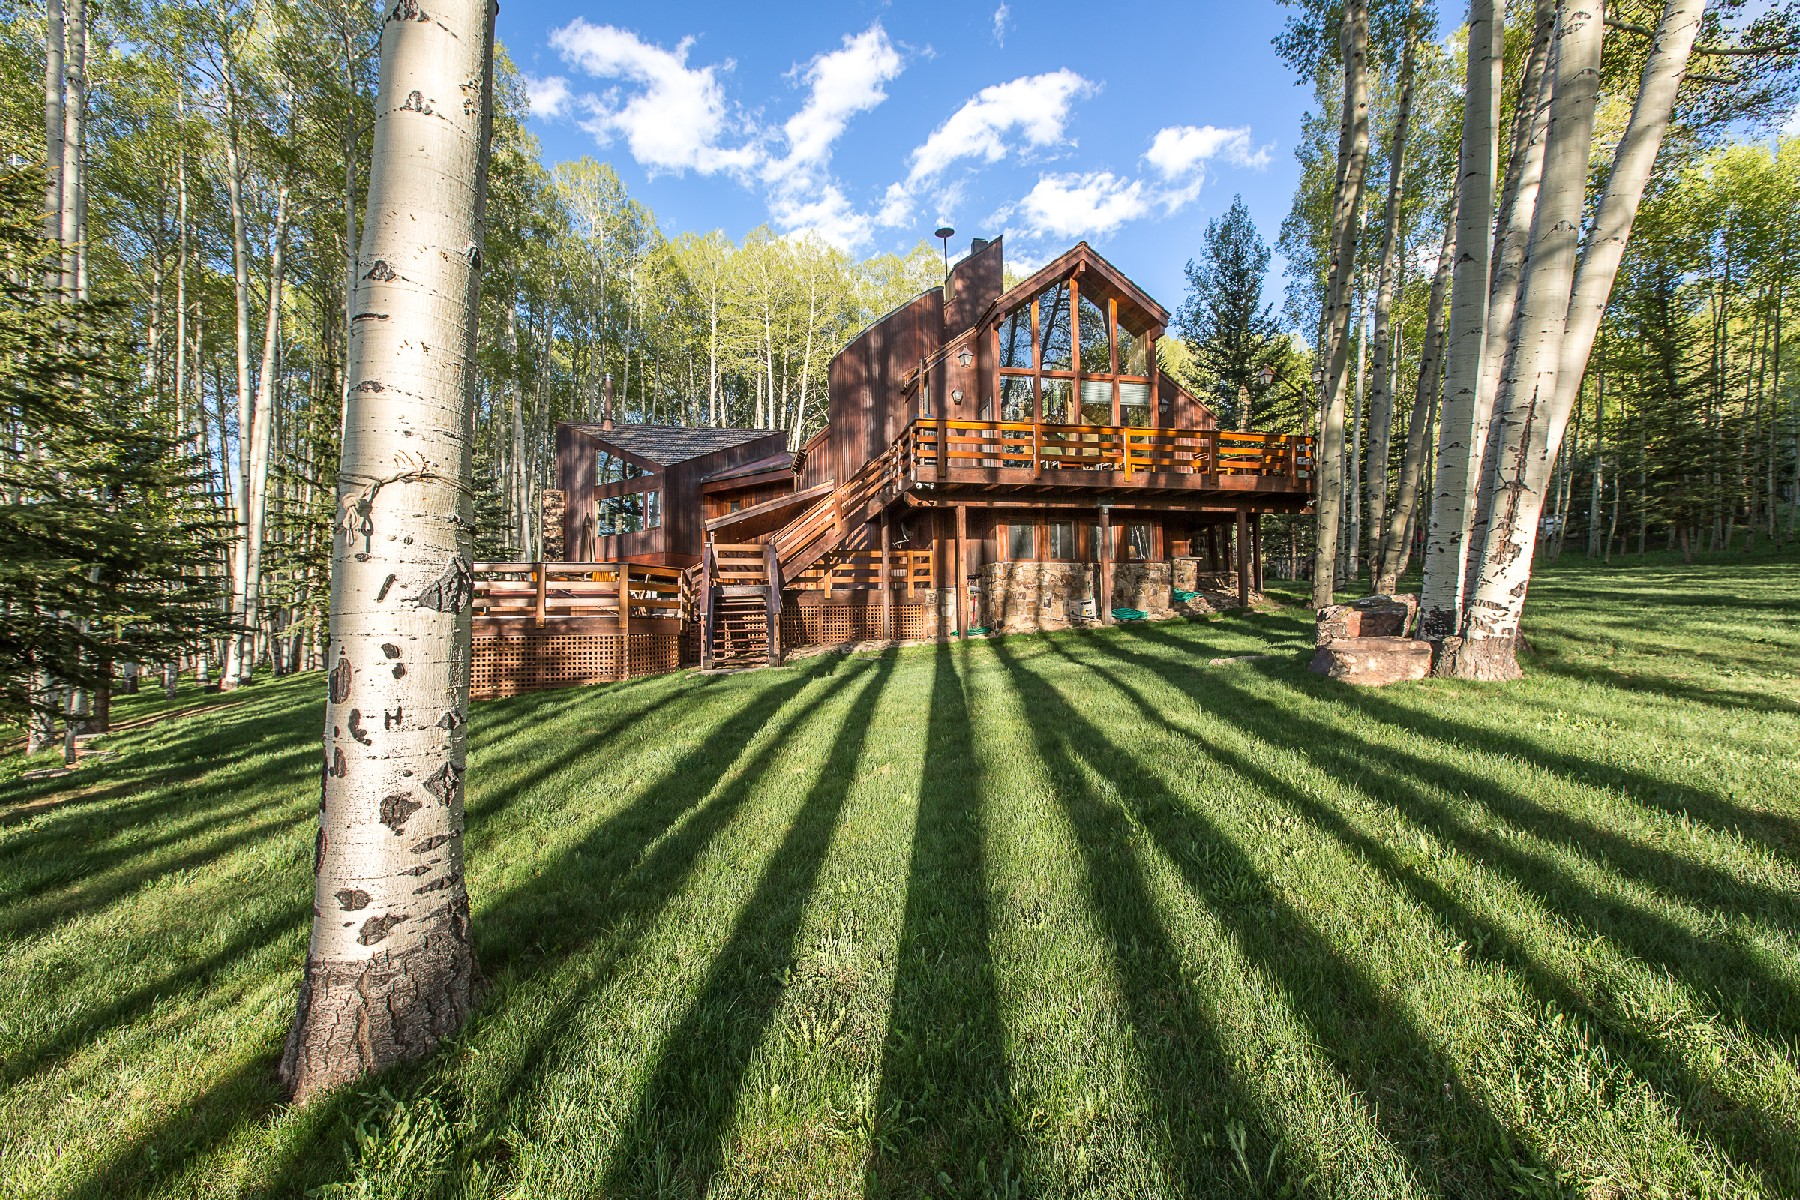 Single Family Home for Active at Lazy Dog Ranch 1075 Wilson Mesa Circle Placerville, Colorado 81430 United States